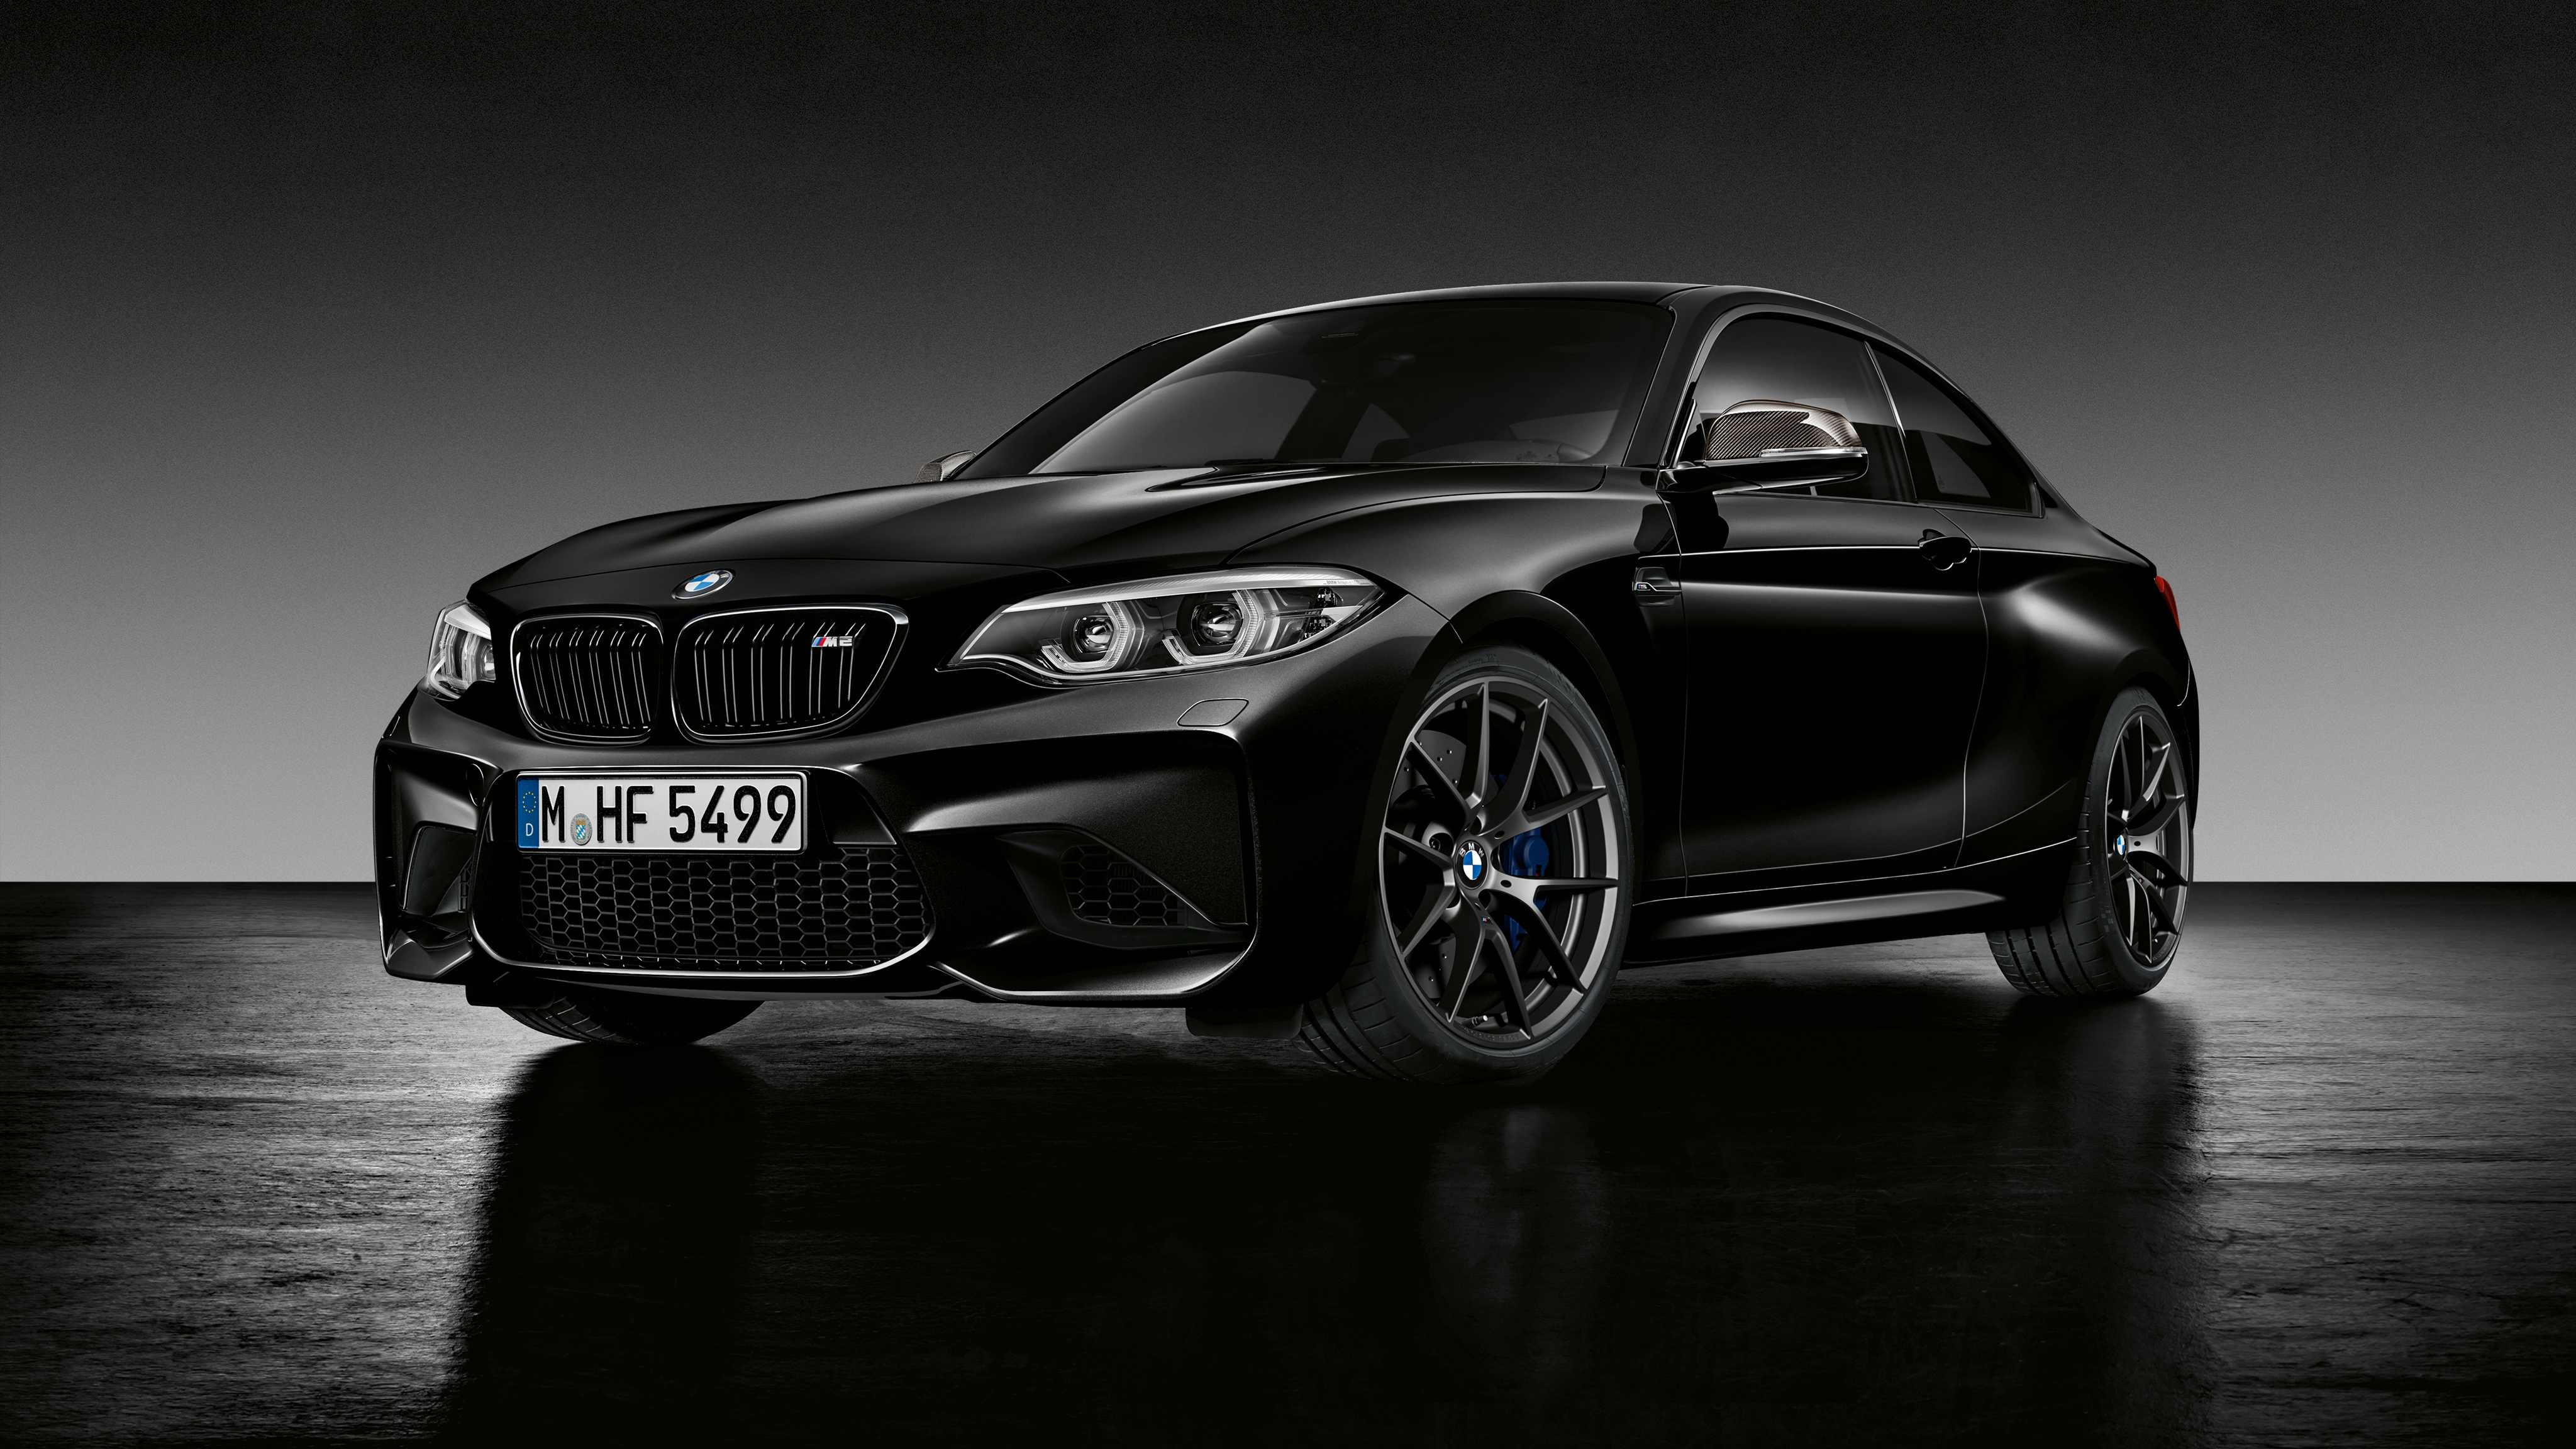 4096x2304 - BMW M2 Coupe Wallpapers 11